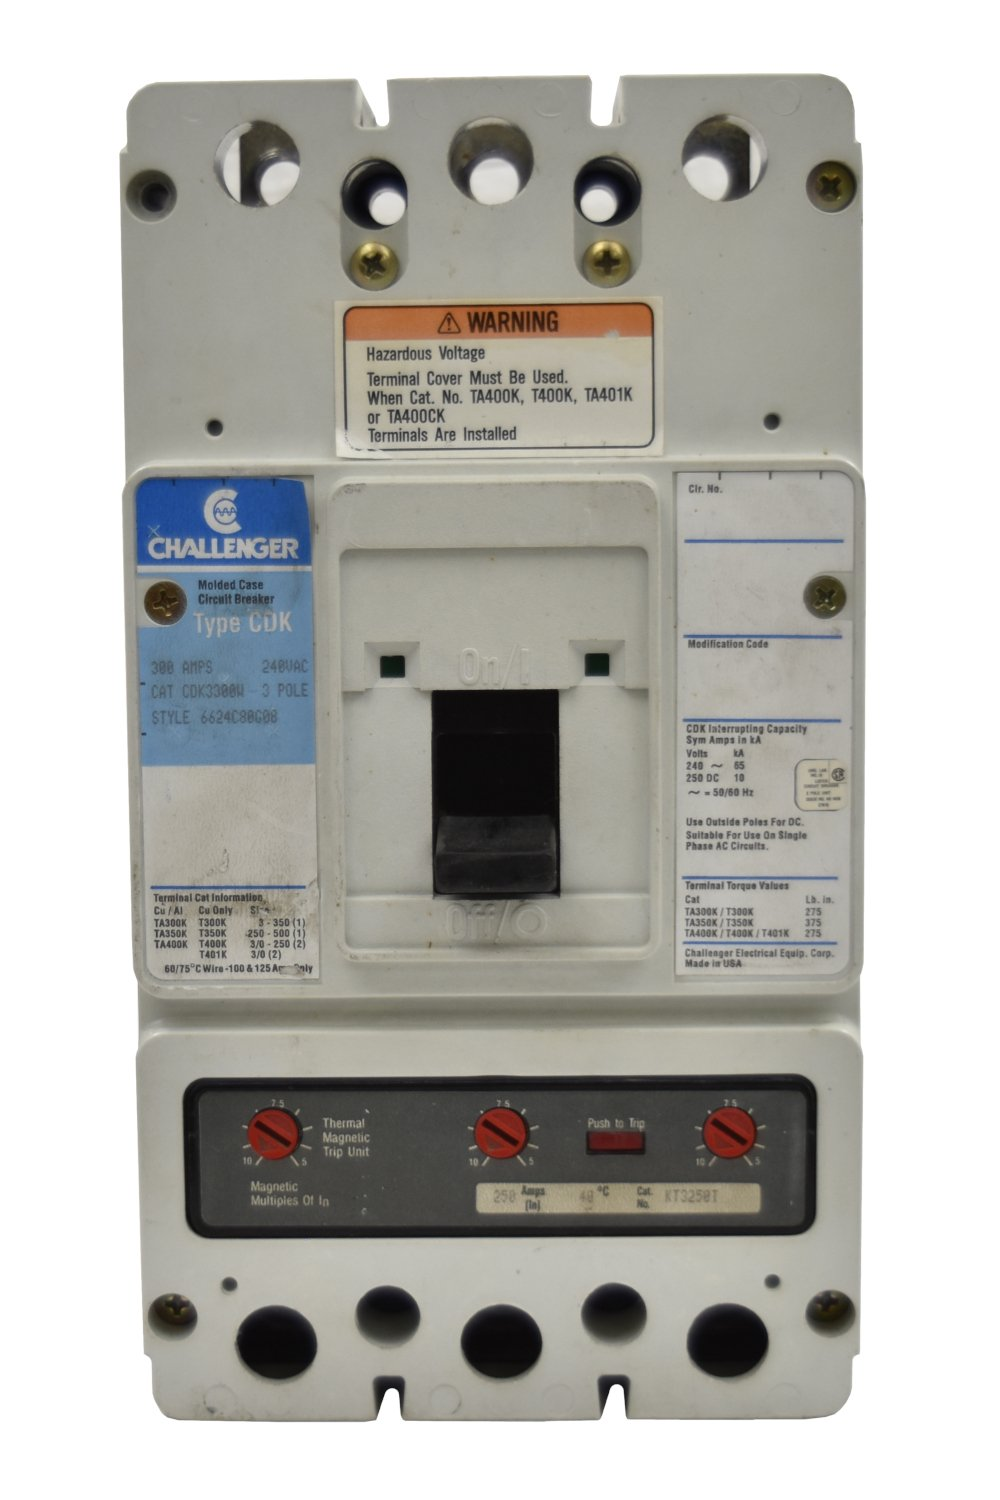 Challenger CDK2300 Circuit Breakers